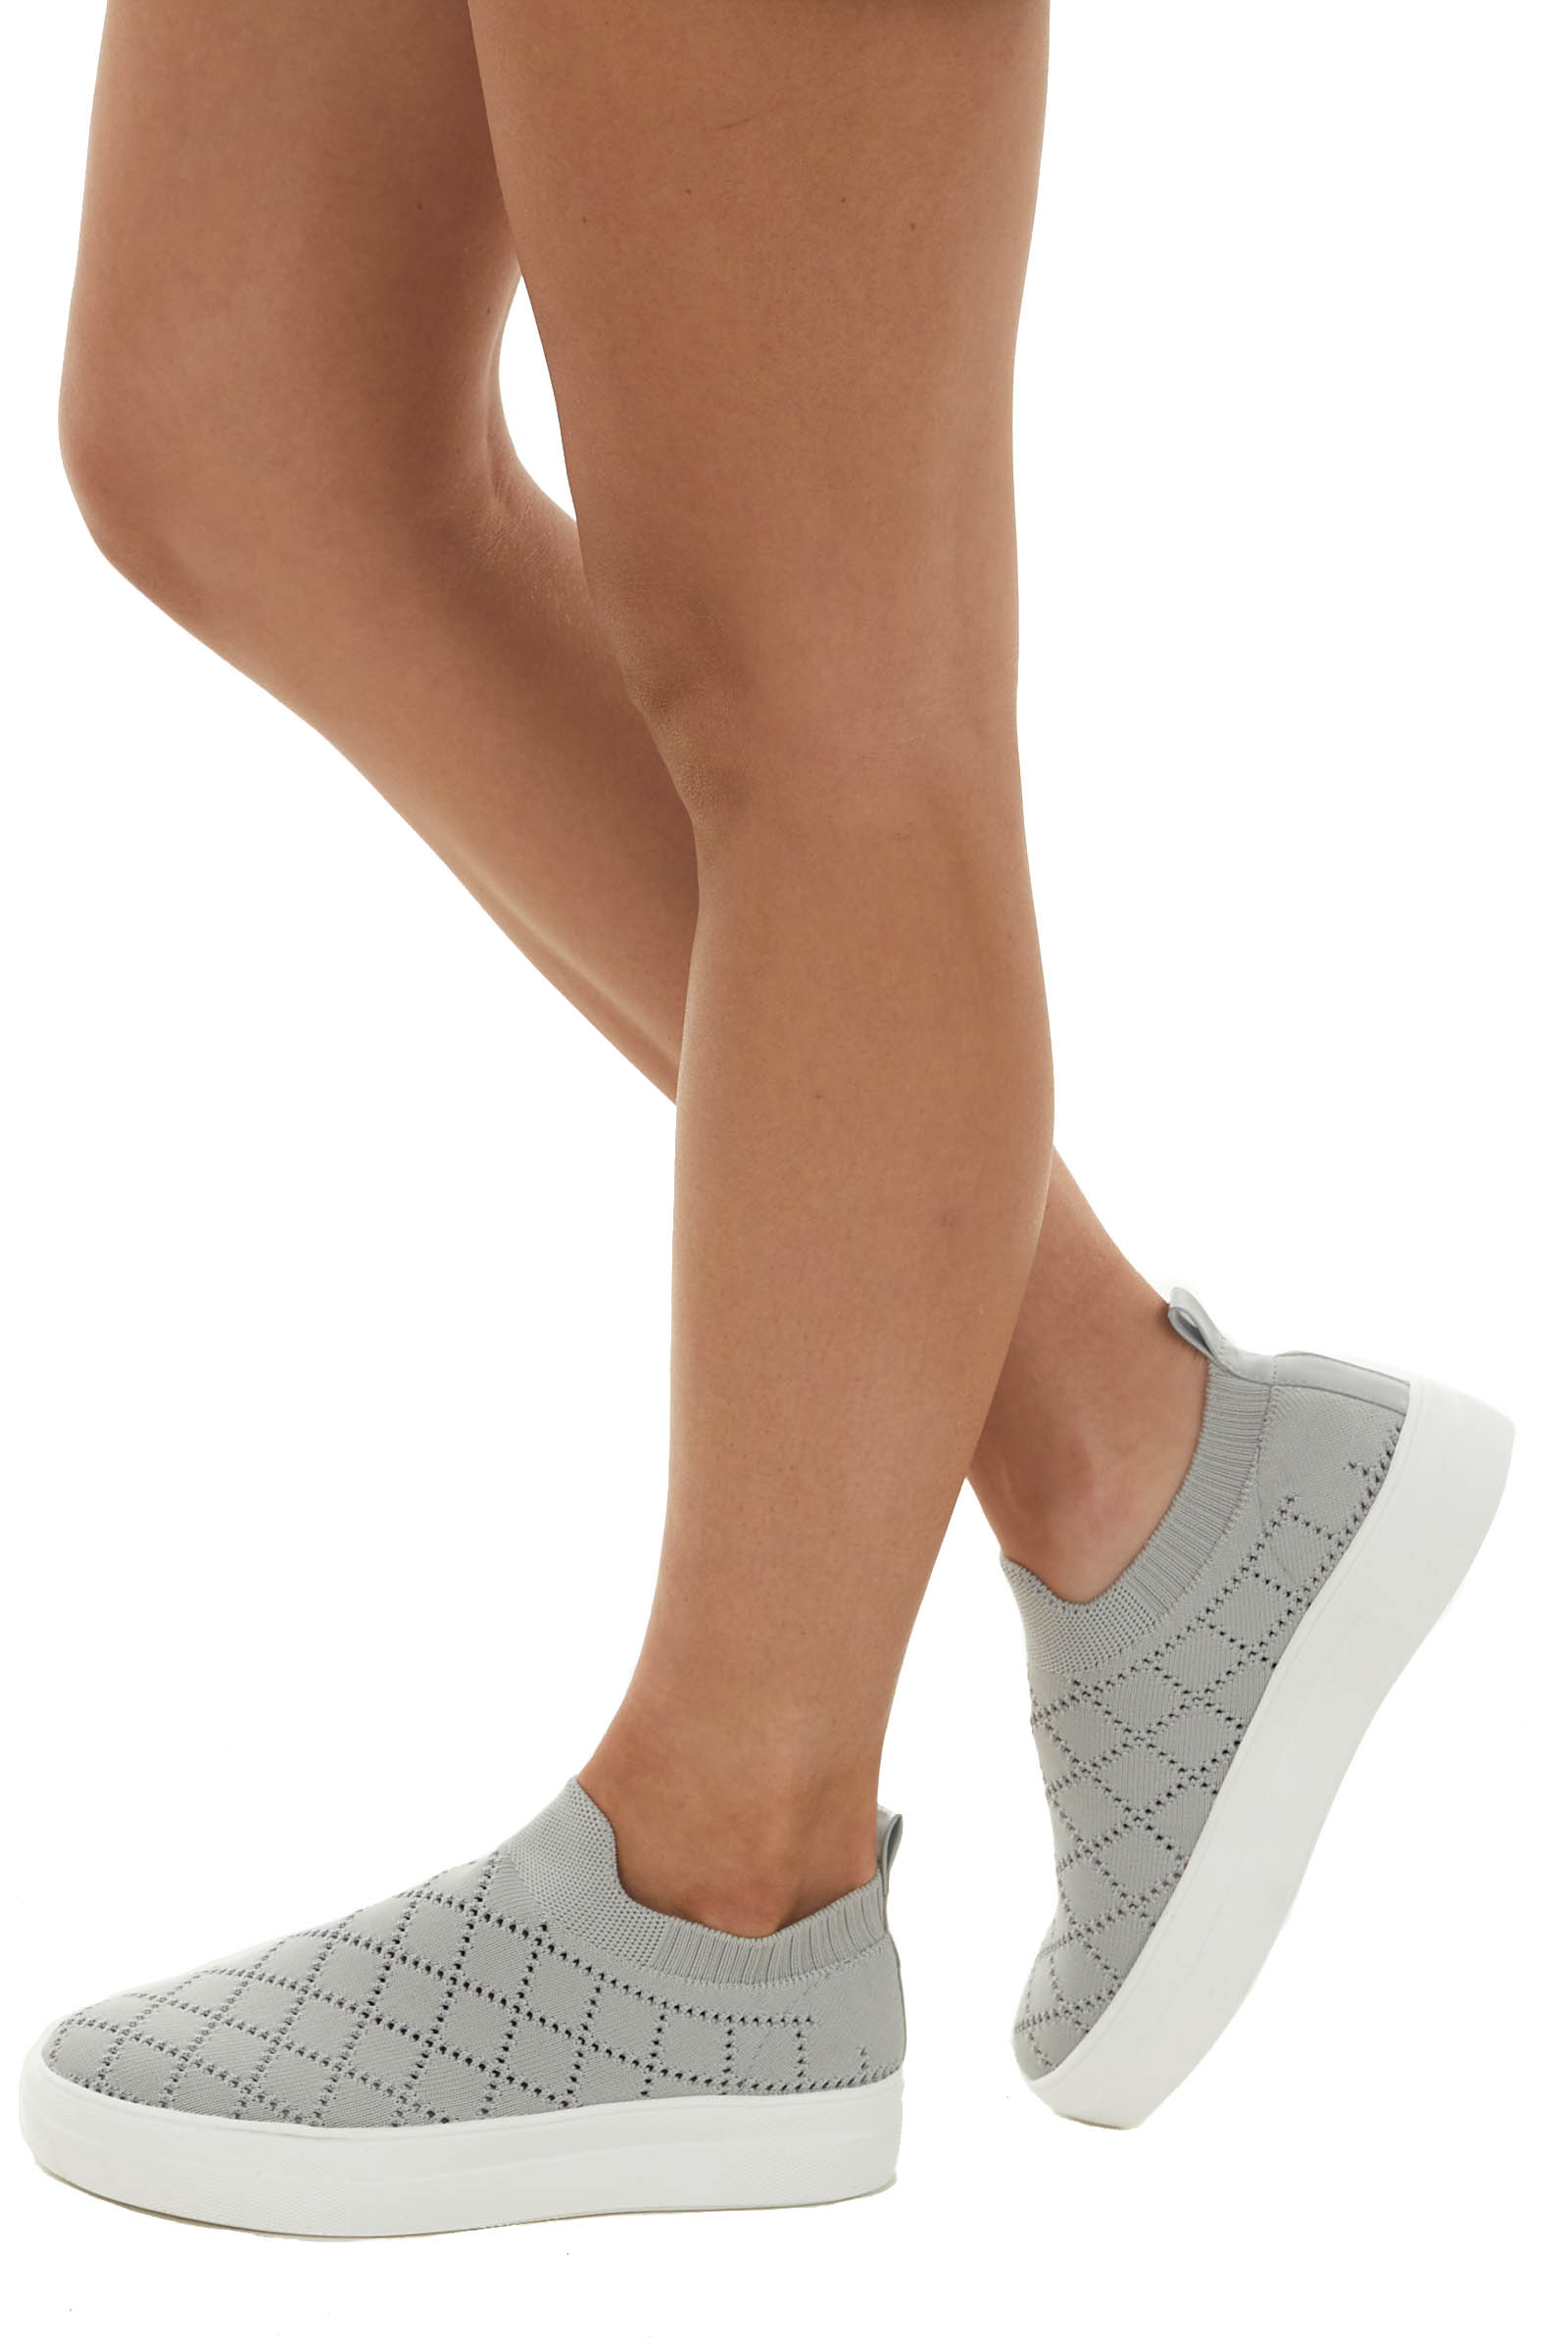 Dove Grey Knit Casual Slip On Sneakers